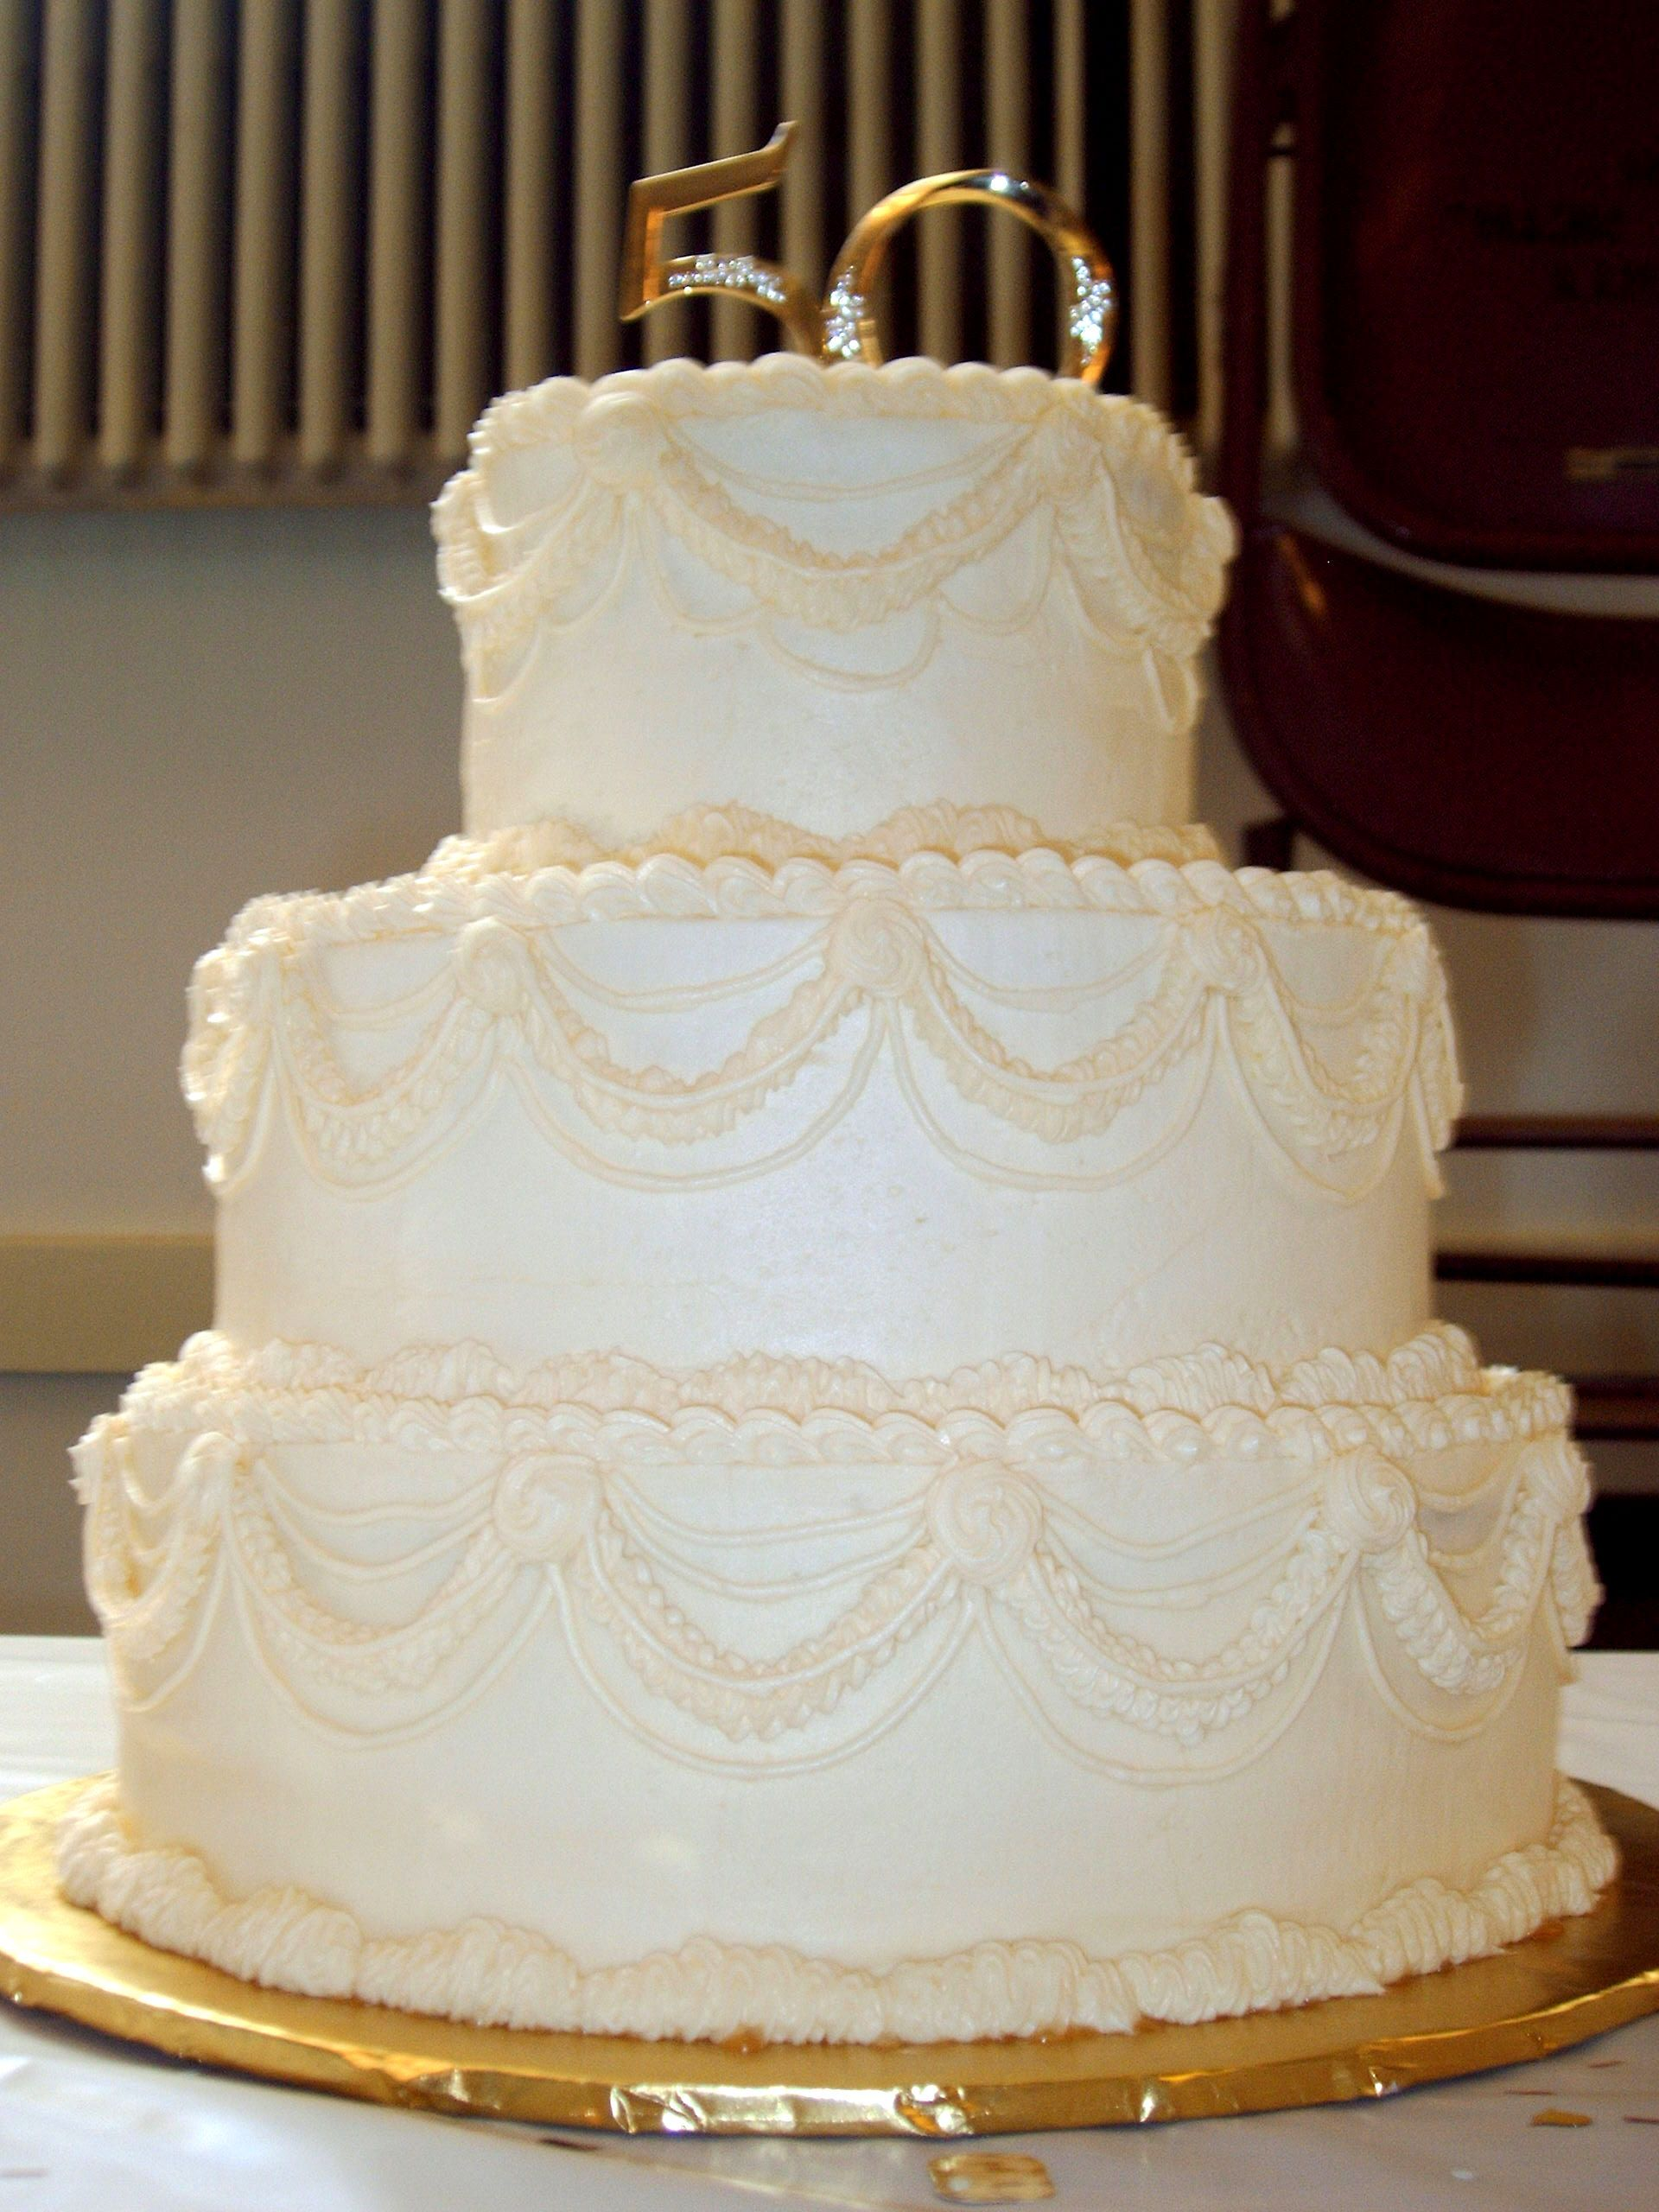 50th anniversary | ann\'s cakes | Pinterest | Anniversaries, 50th and ...